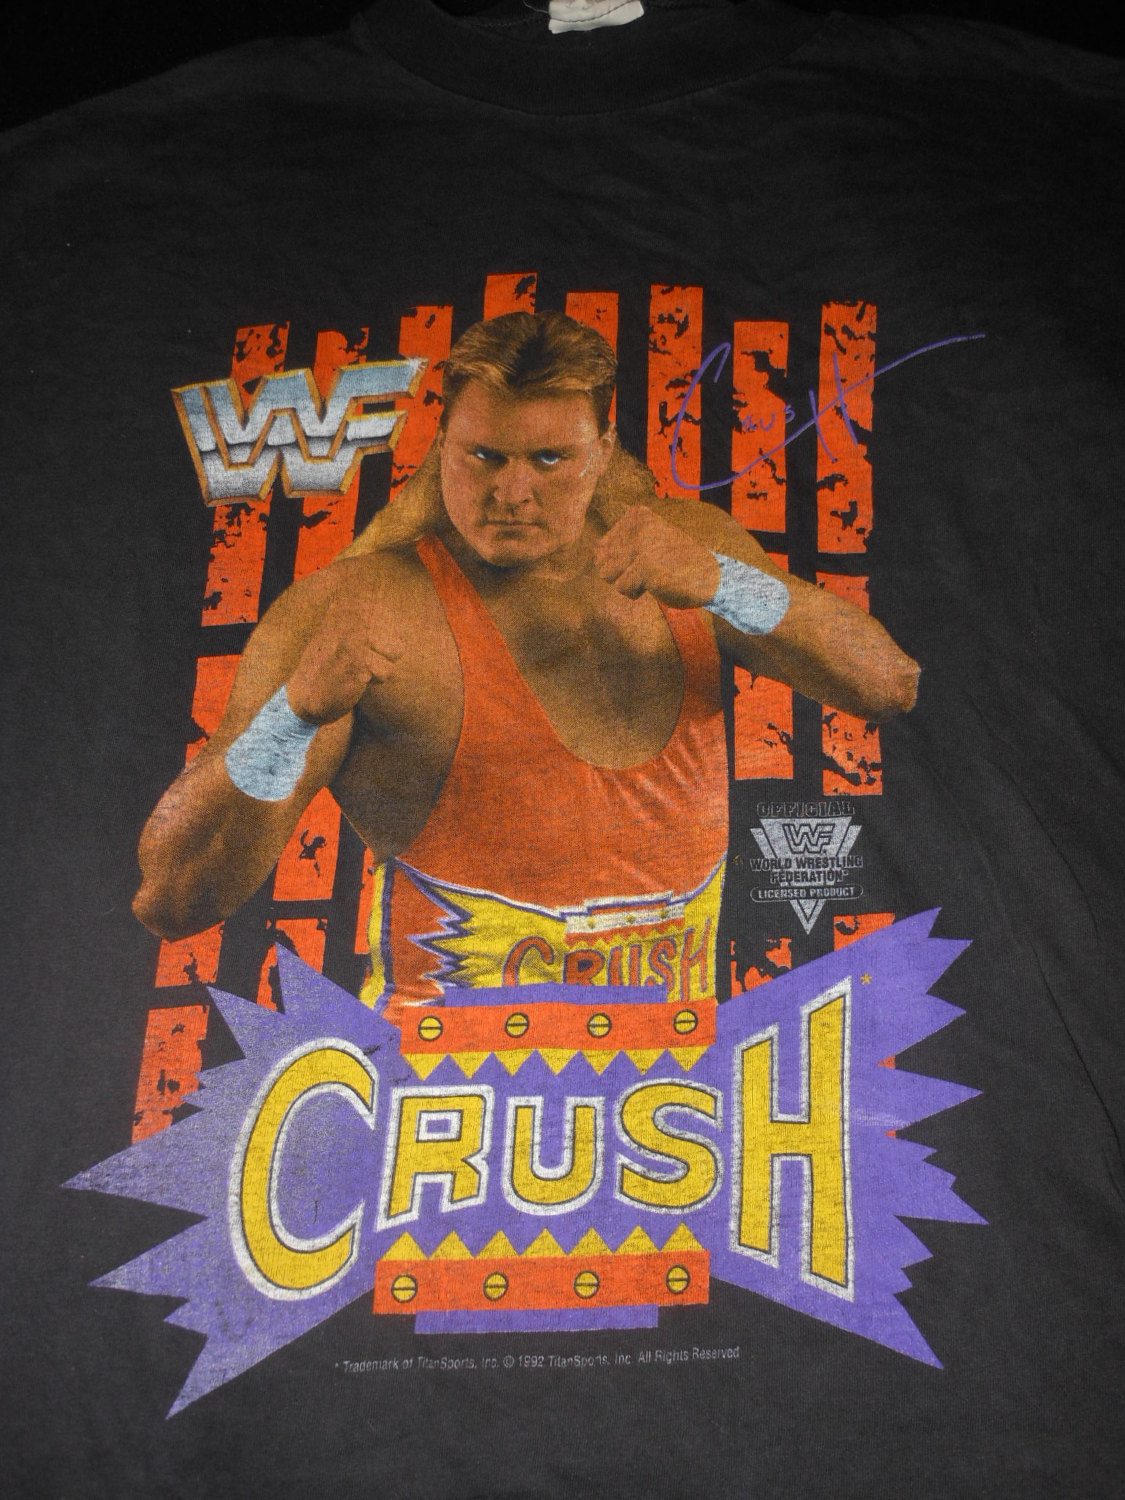 WWF Crush shirt